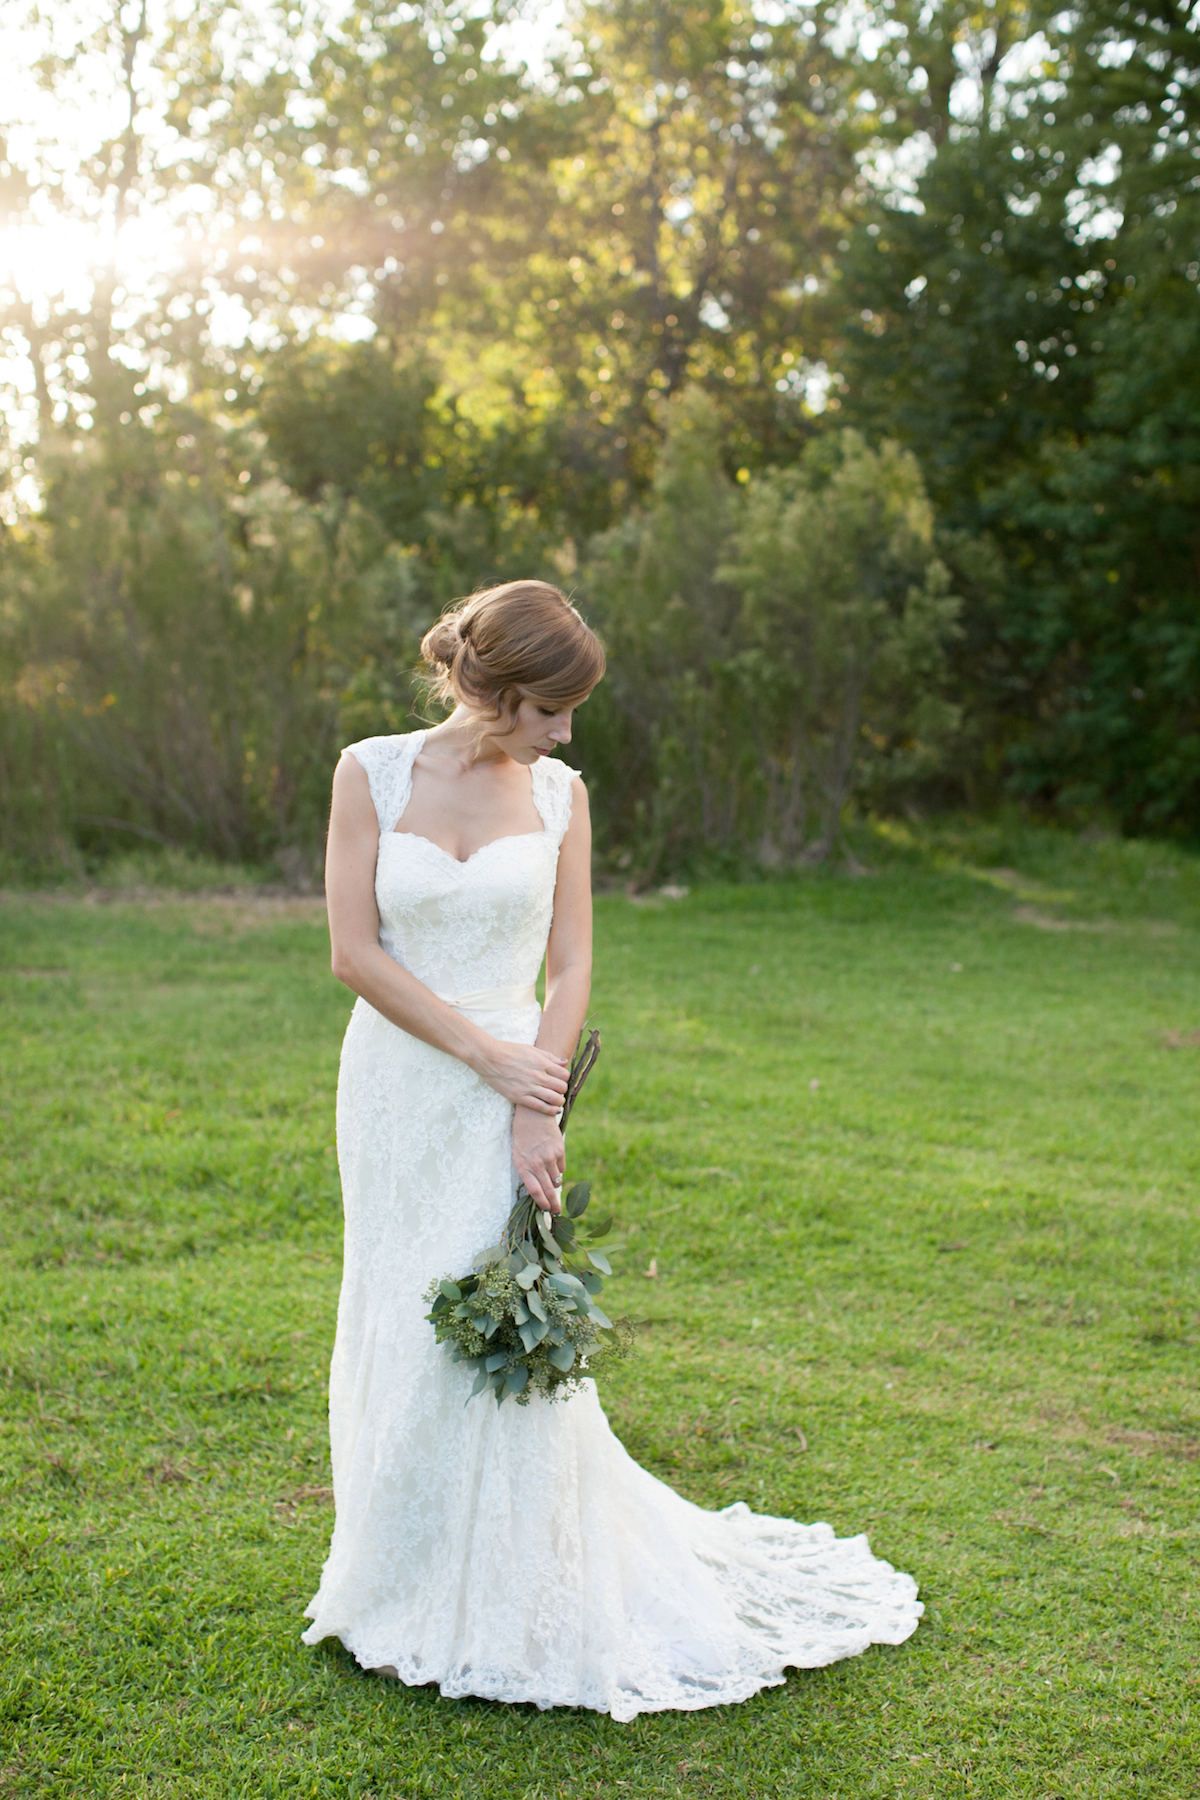 kate stafford photography | bridal portrait